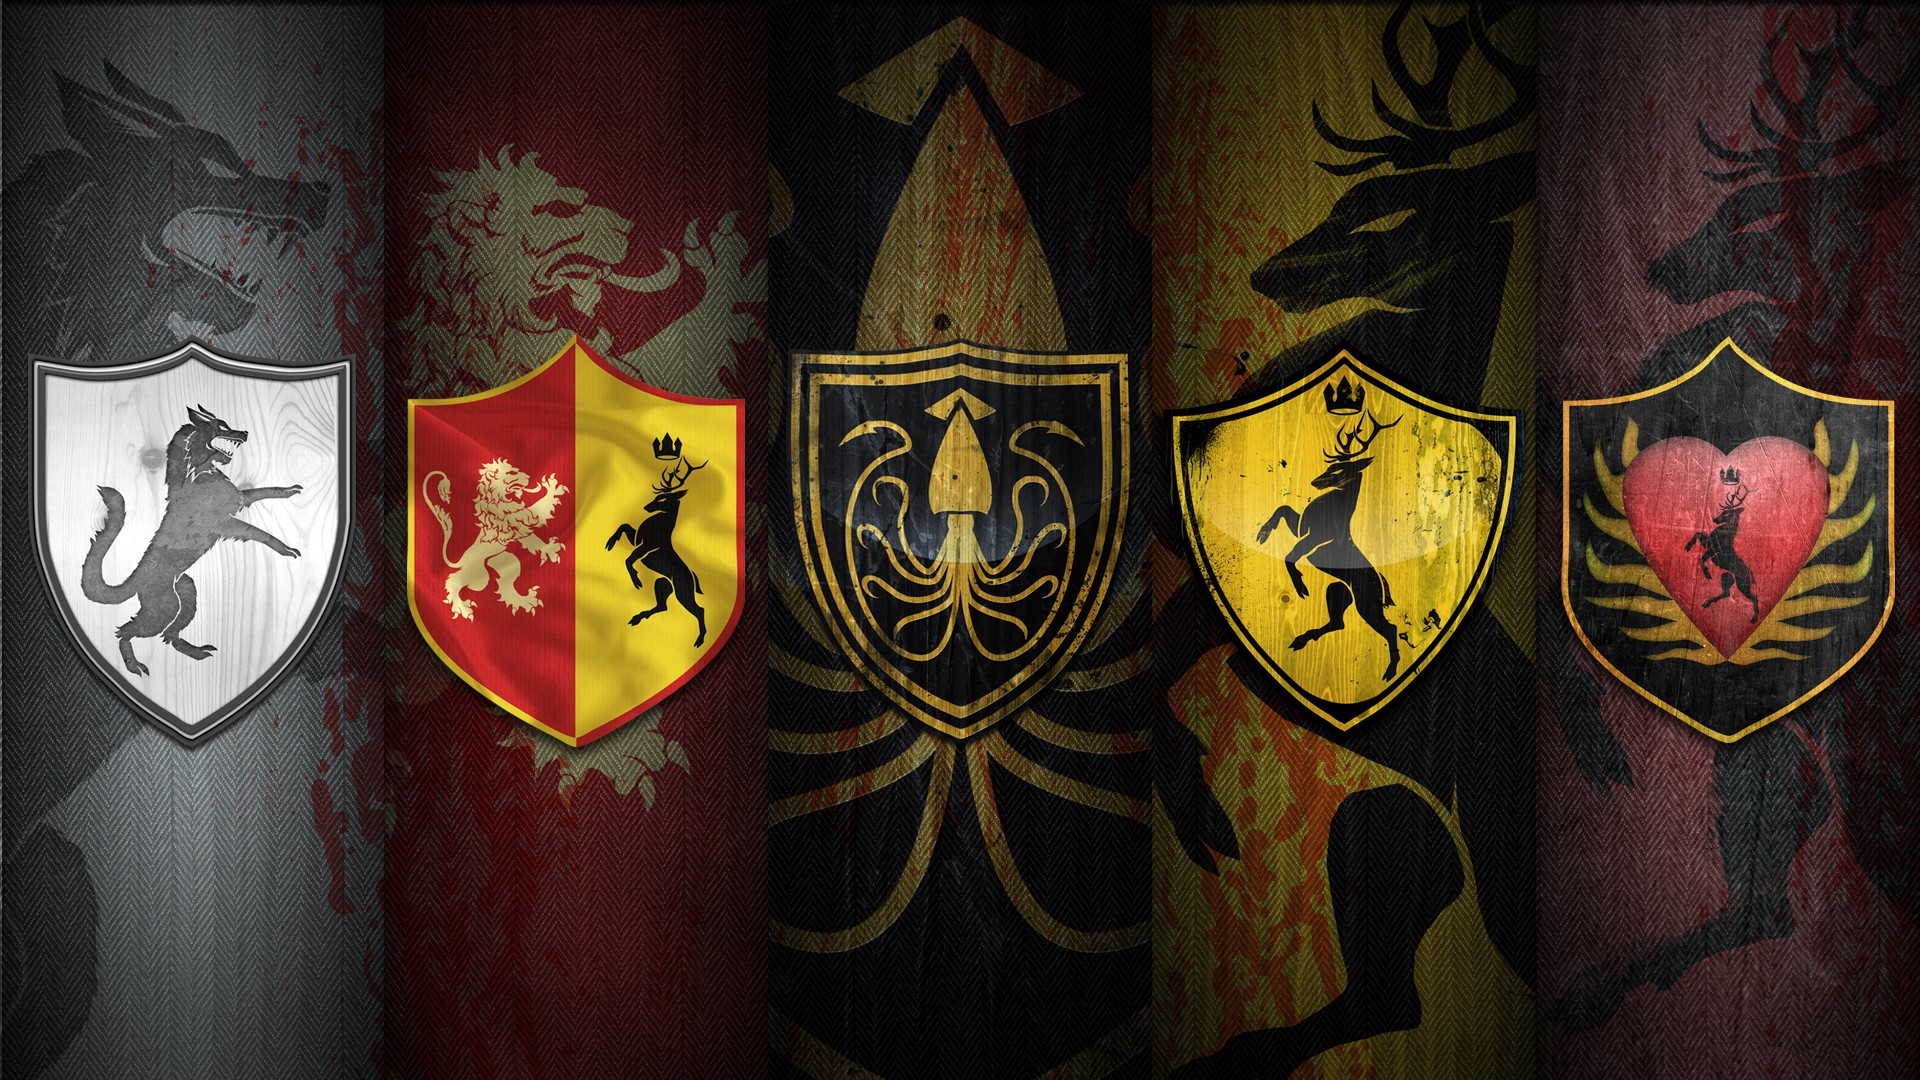 Top Wallpaper Home Screen Game Throne - game-of-thrones-wallpaper12121  Snapshot_2110078.jpg